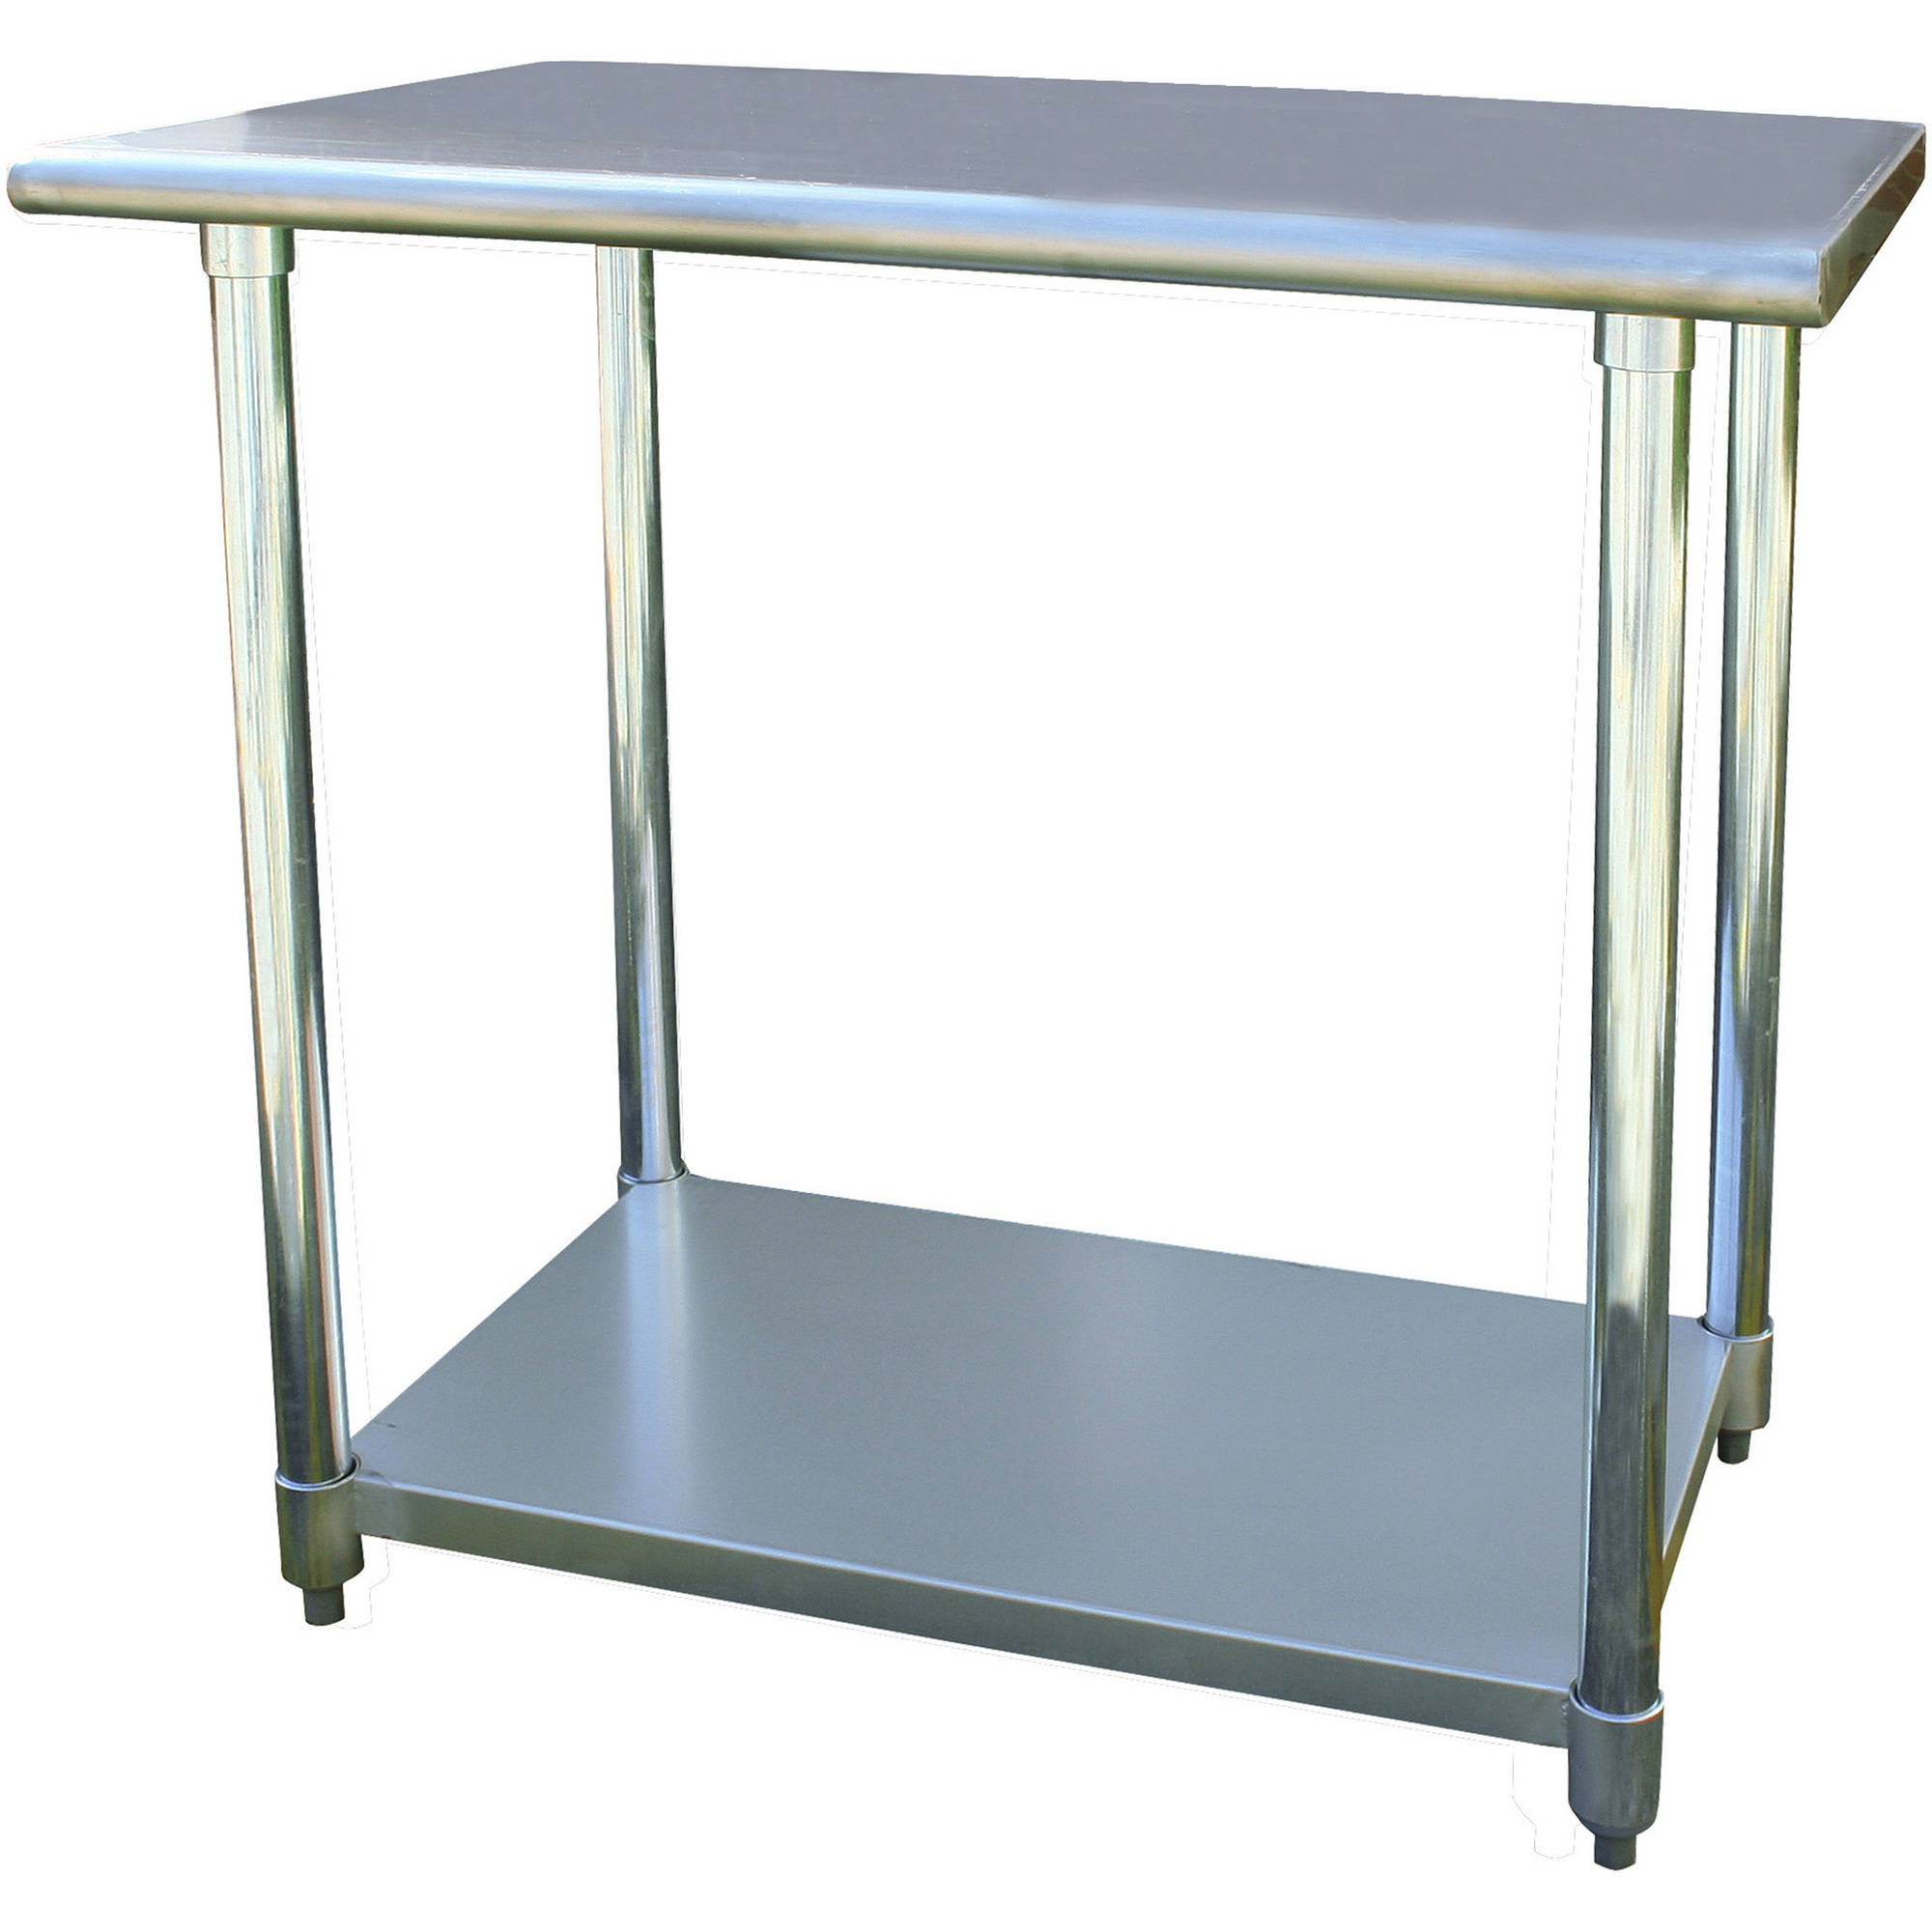 "Sportsman Series Stainless Steel Work Table, 24"" x 36"""